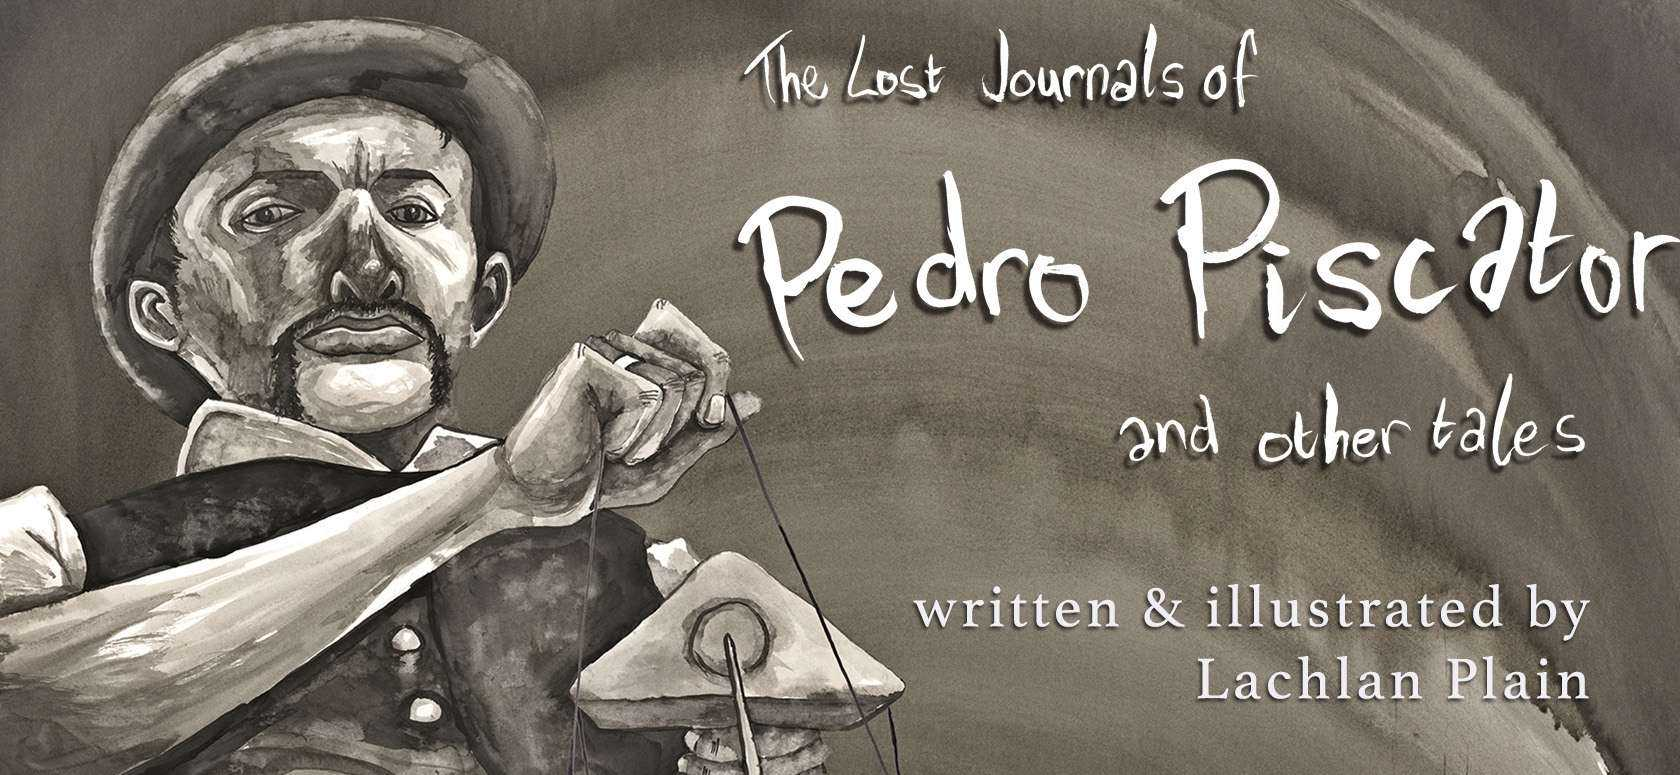 The Lost Journals of Pedro Piscator